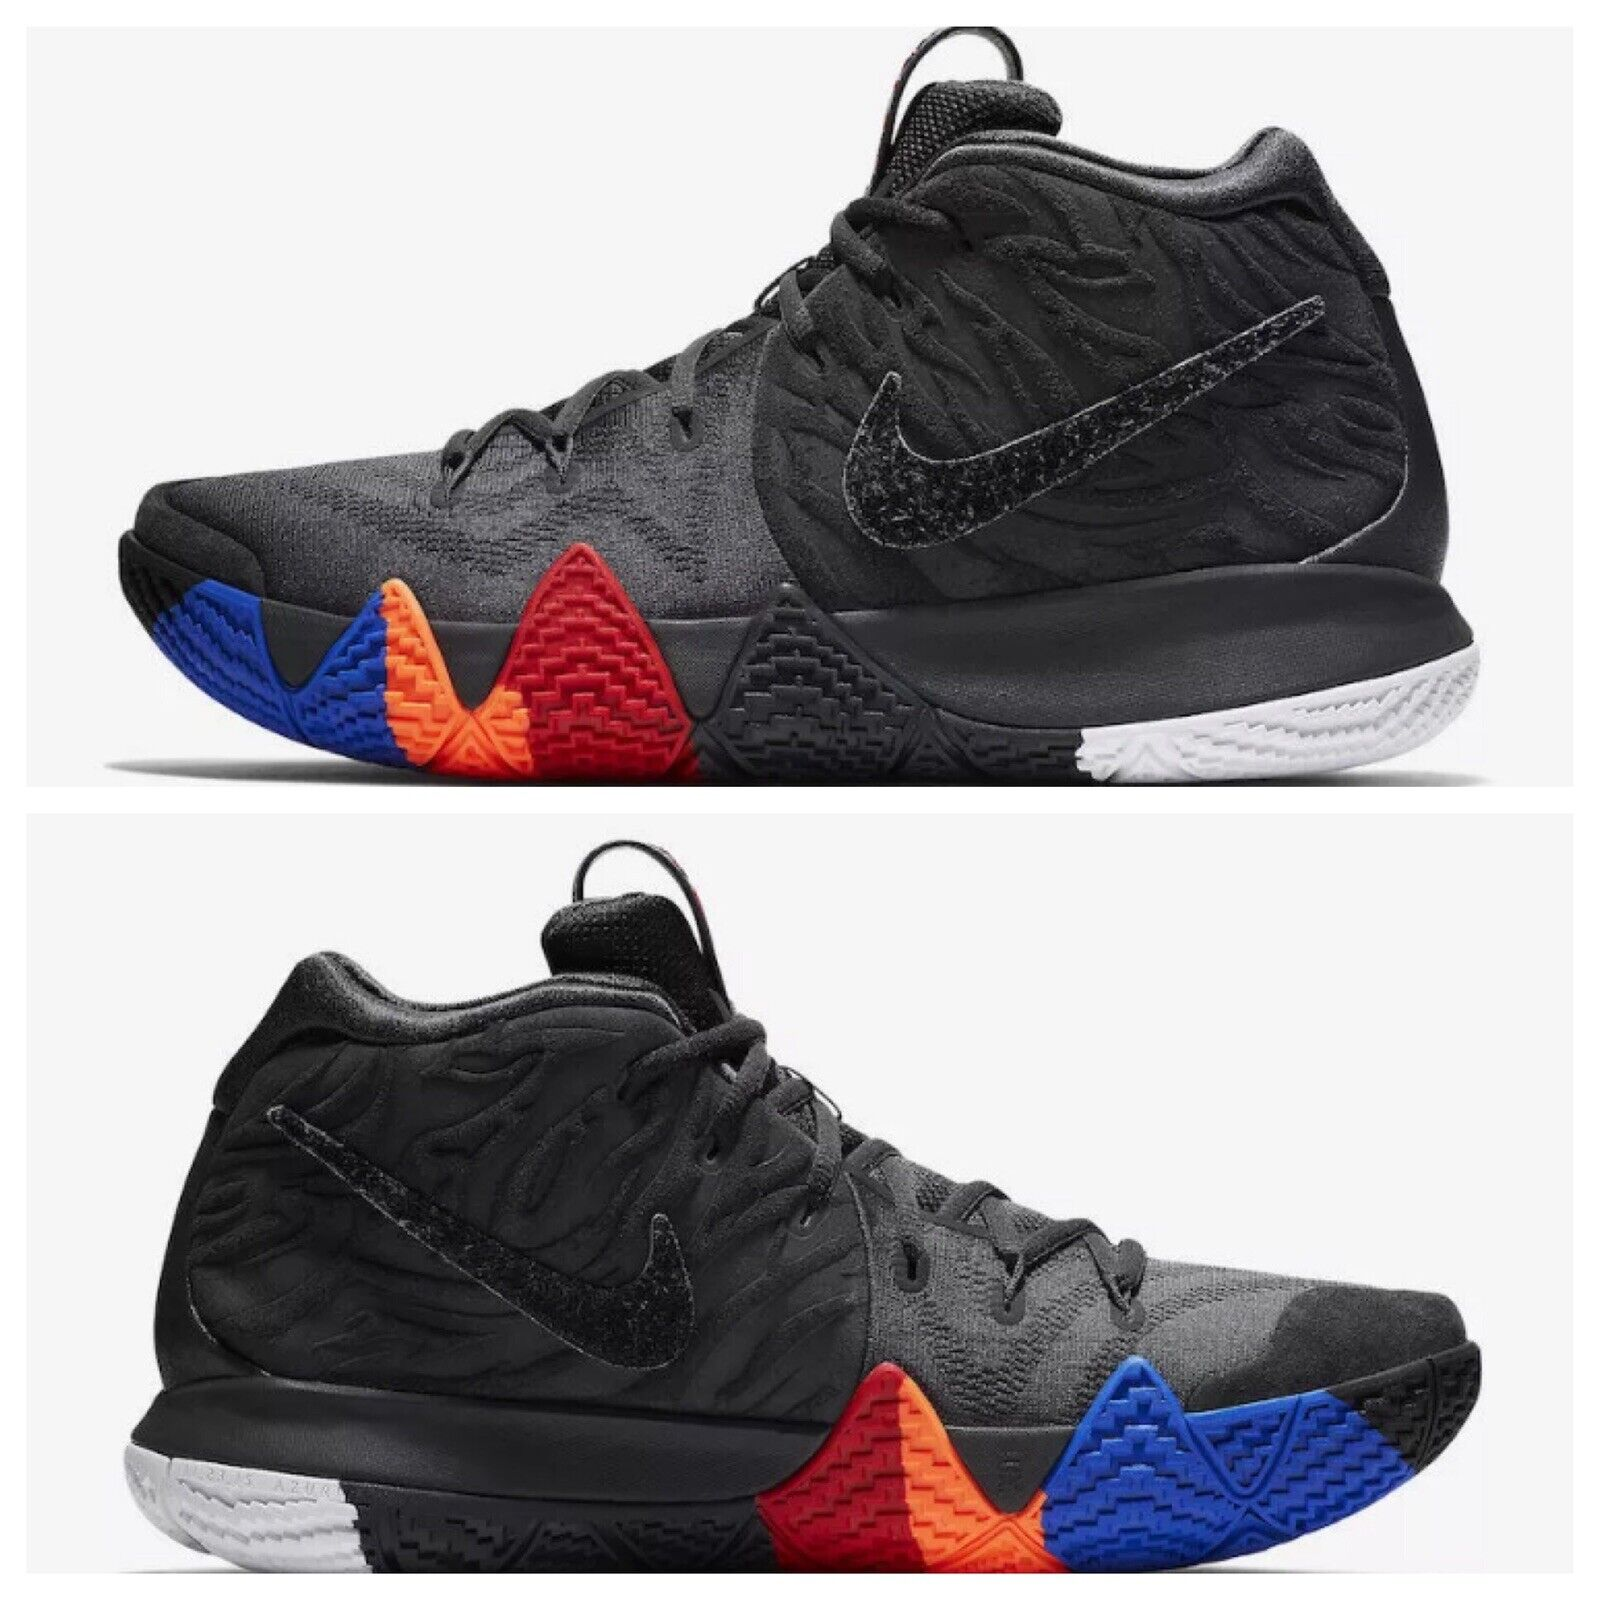 best website 6a29c 1c1d3 Nike Mens Mens Mens Kyrie 4 IV Year Of The Monkey Basketball shoes  943806-011